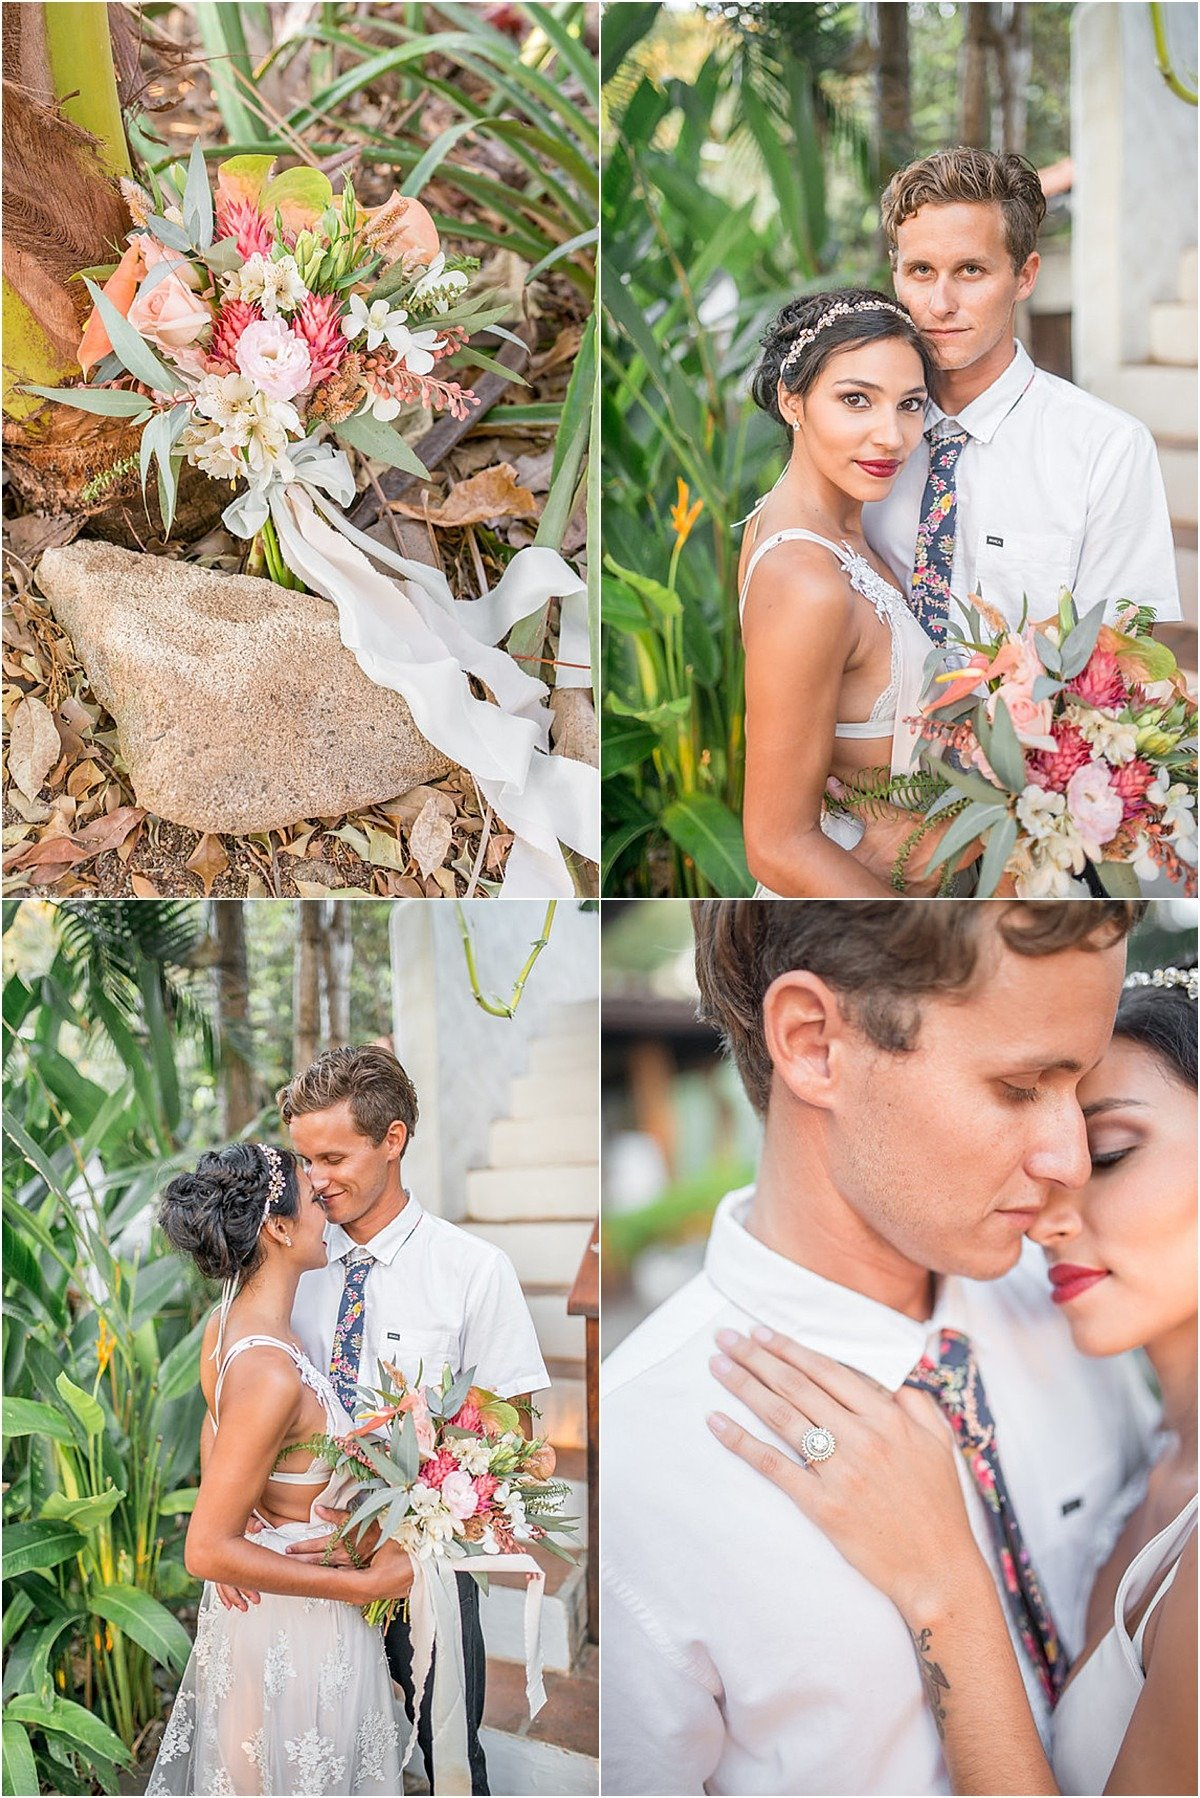 Flores de Camposwhipped up the most gorgeous tropical florals for the occasion